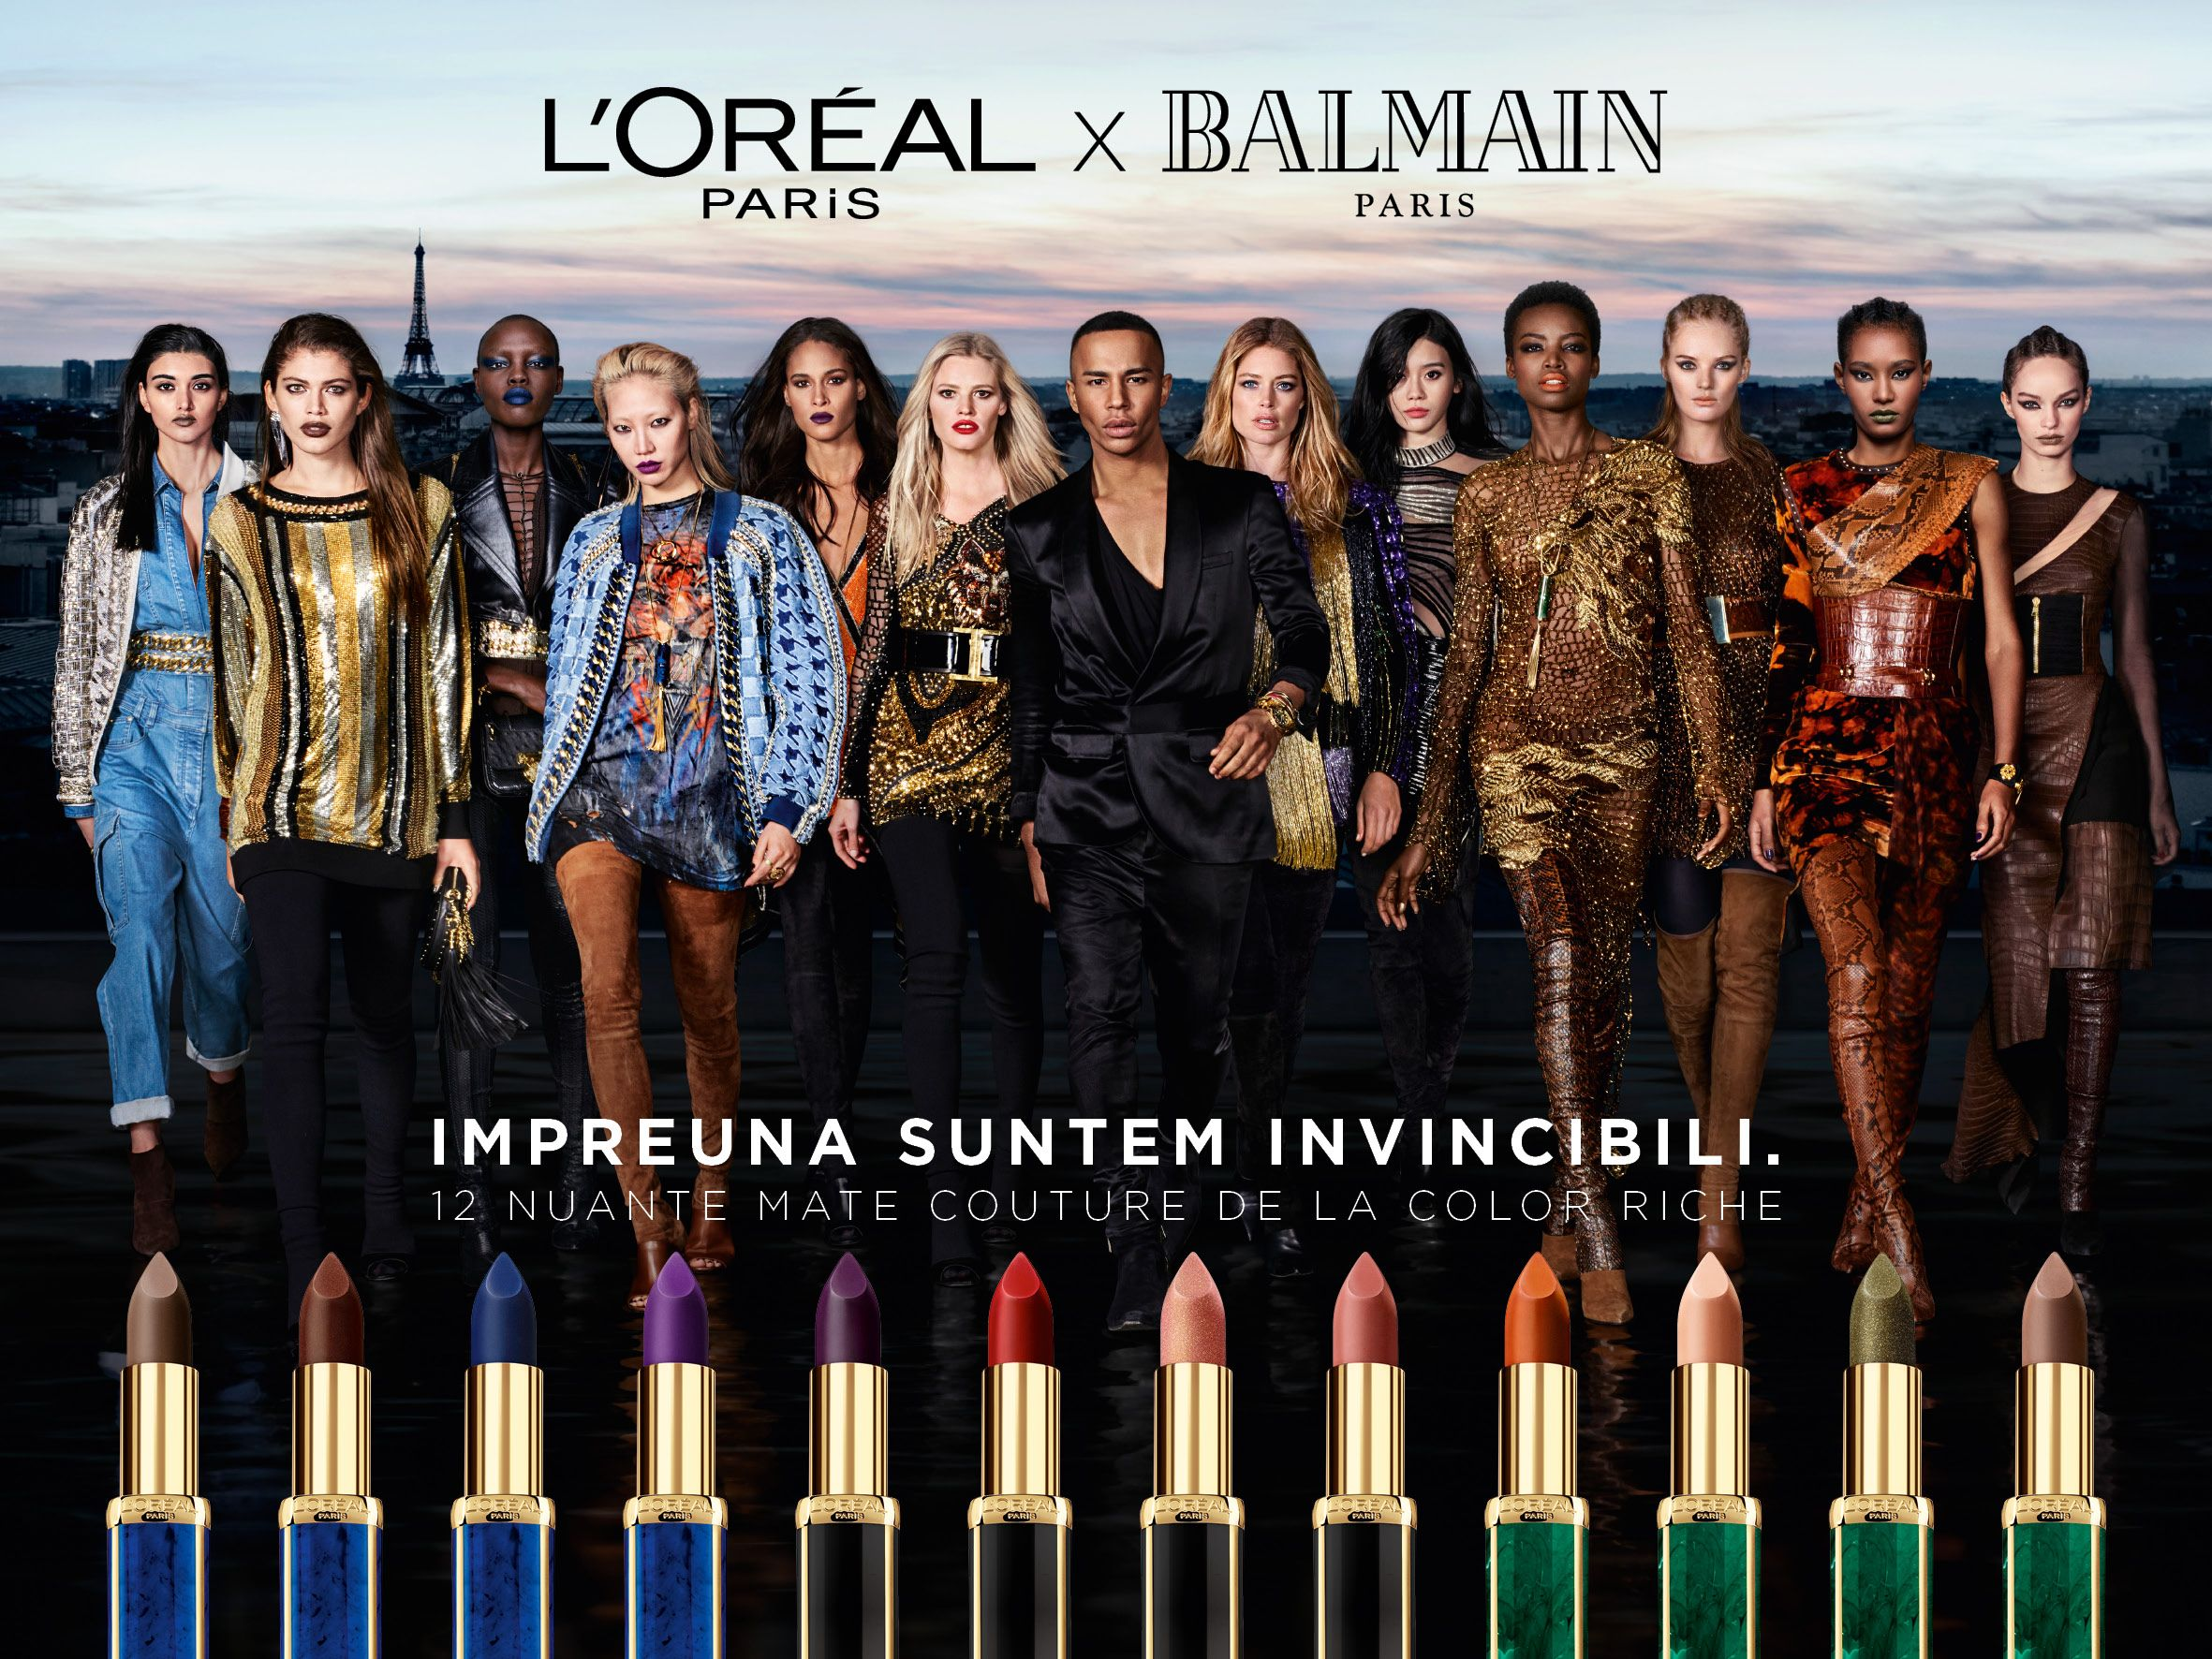 BALMAIN Paris x L'Oreal Paris Lipstick Collection